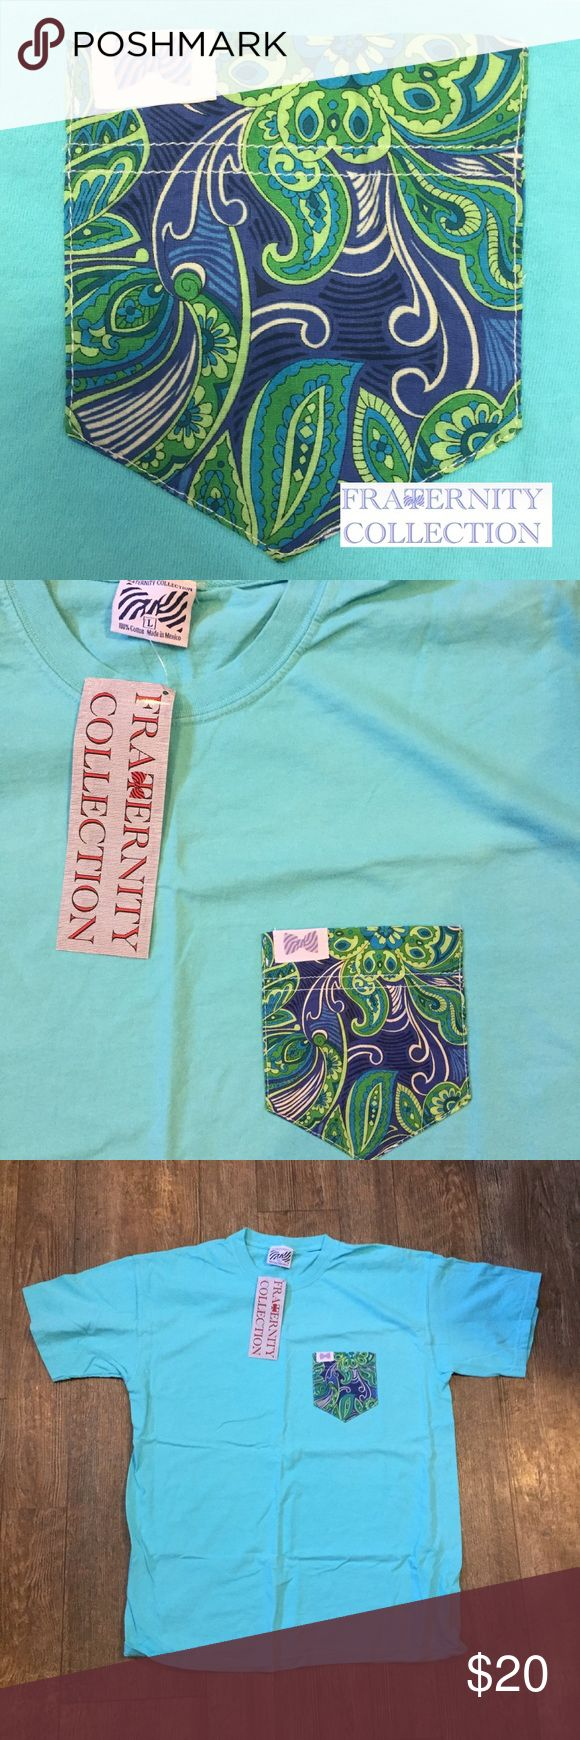 "Fraternity Collection Pocket T shirt Drue Fraternity Collection. Size Large. This is the ""Drue"" style pocket on a marlin-blue t shirt. Perfect to throw on over a bathing suit for the beach, pair with Nike shorts, yoga pants or even skinny jeans for a cute effortless preppy look! * put in Lilly for viewing, there's no fraternity Collection category* Lilly Pulitzer Tops Tees - Short Sleeve"